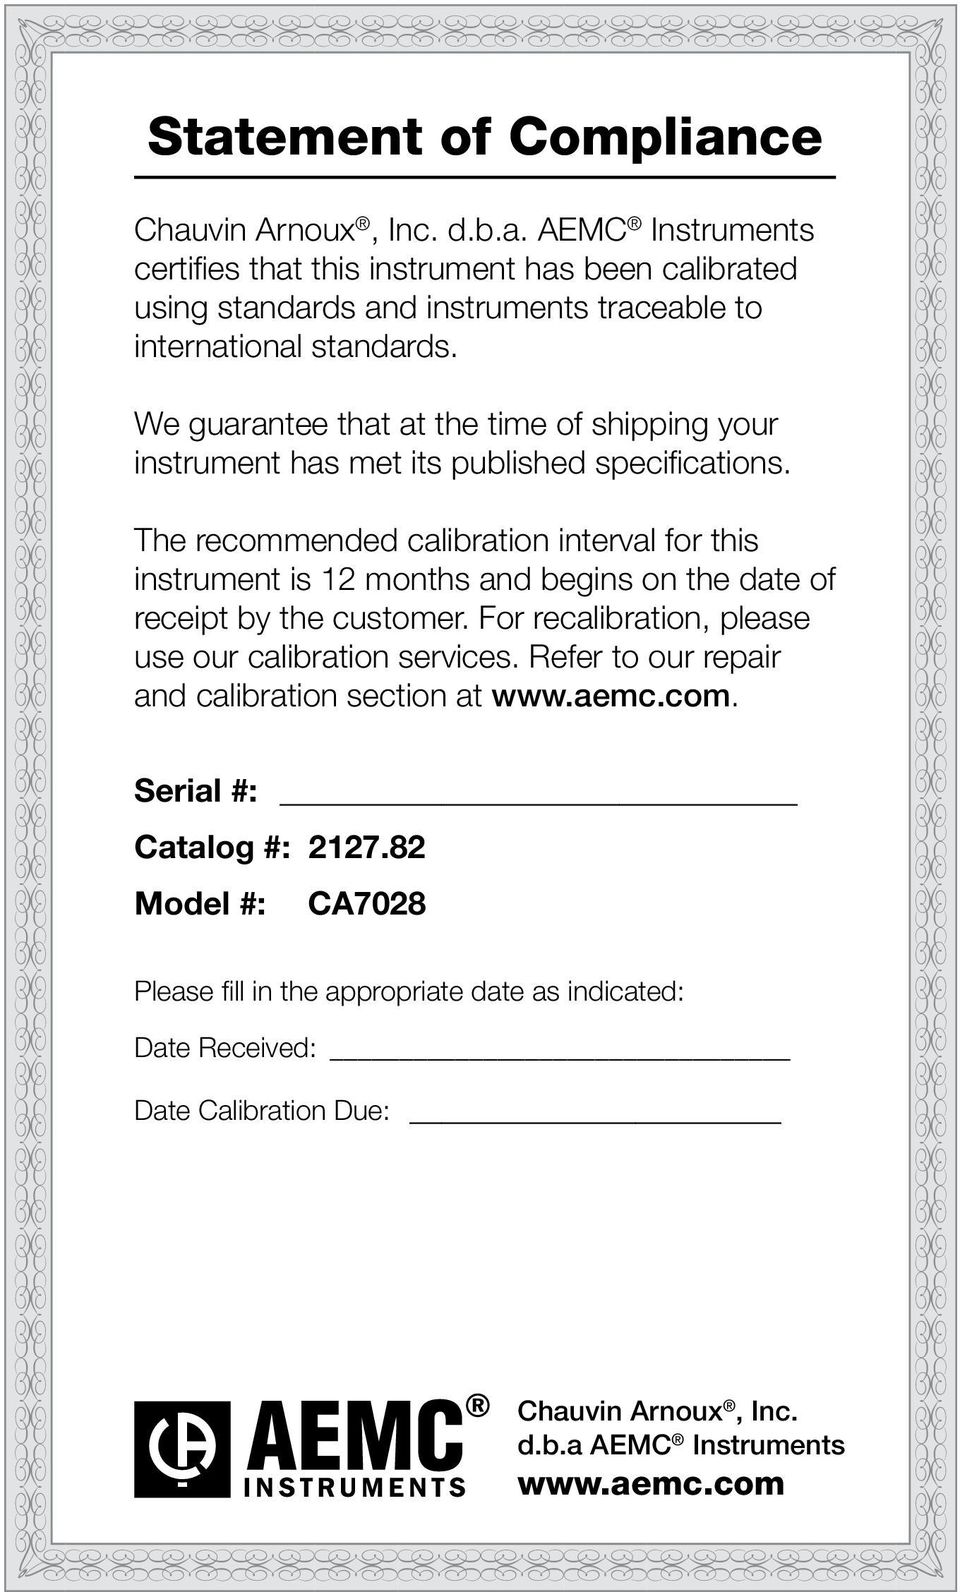 The recommended calibration interval for this instrument is months and begins on the date of receipt by the customer. For recalibration, please use our calibration services.